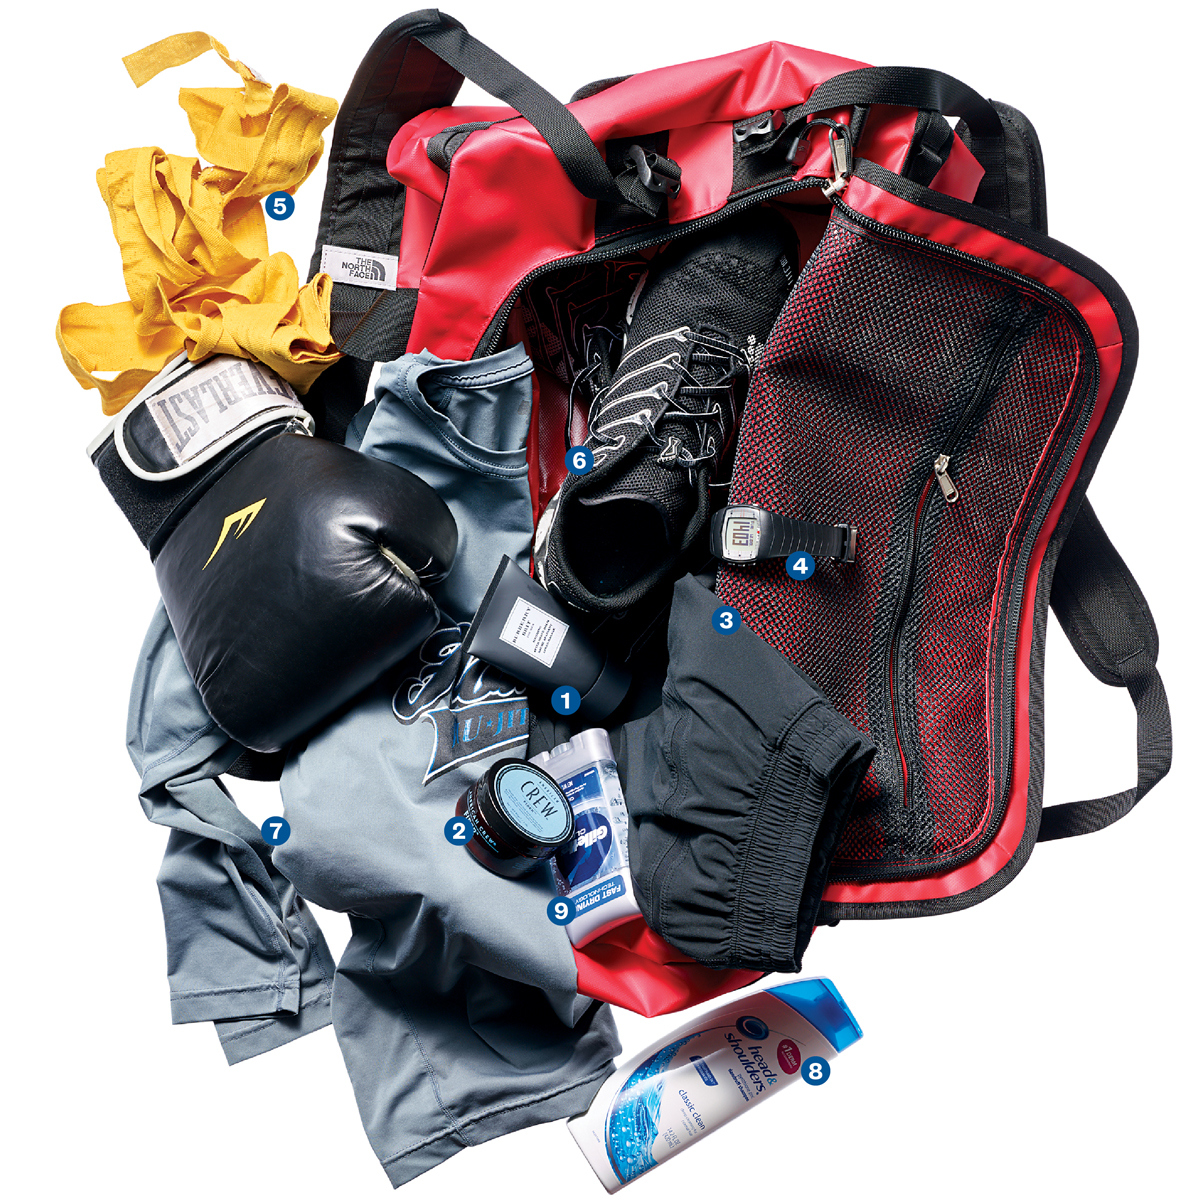 fitness-pros-gym-bags-1